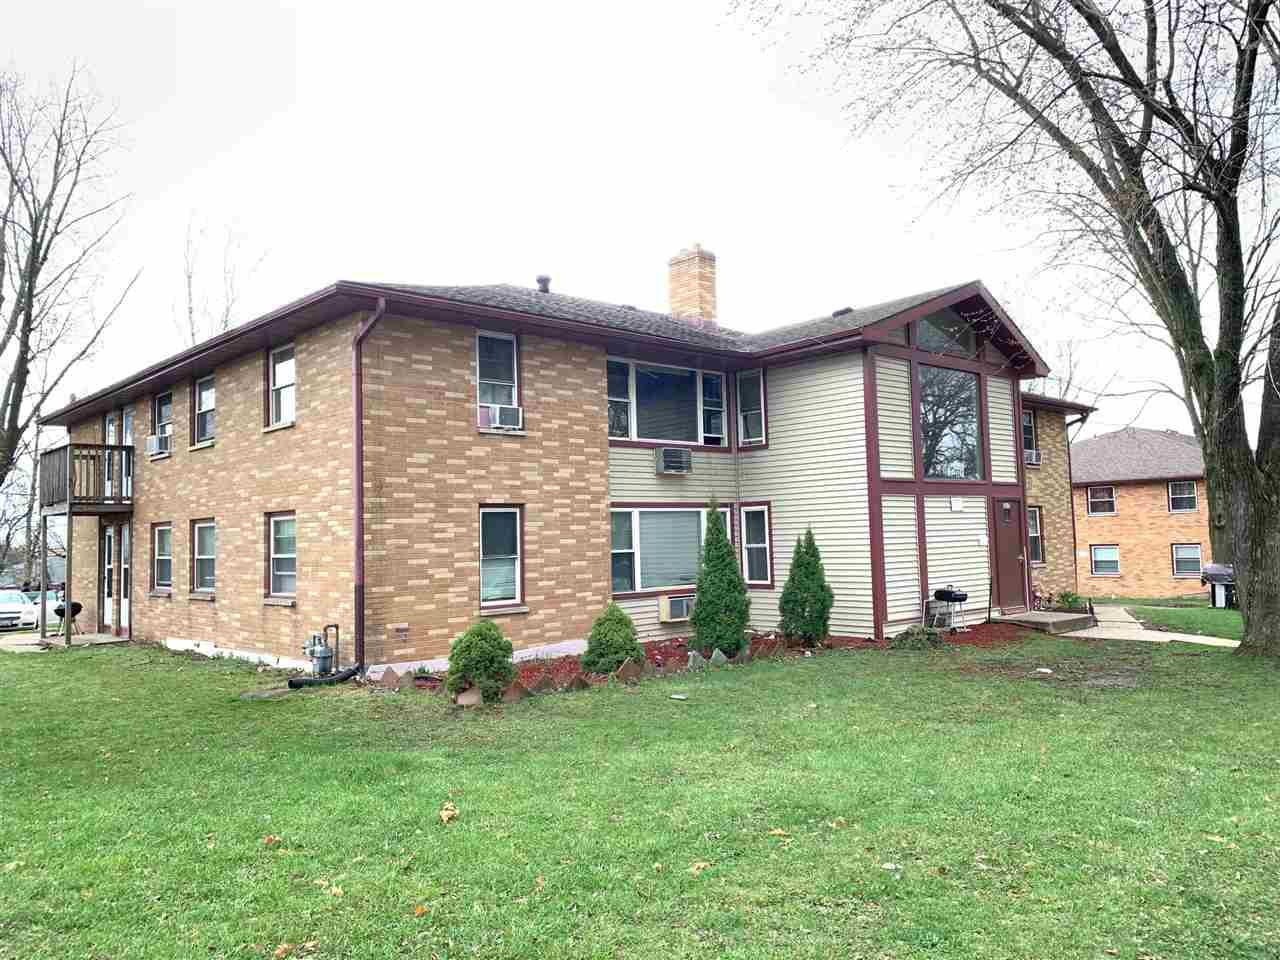 2309-2325 Carling Dr, Madison, WI 53711 - MLS#: 1906305